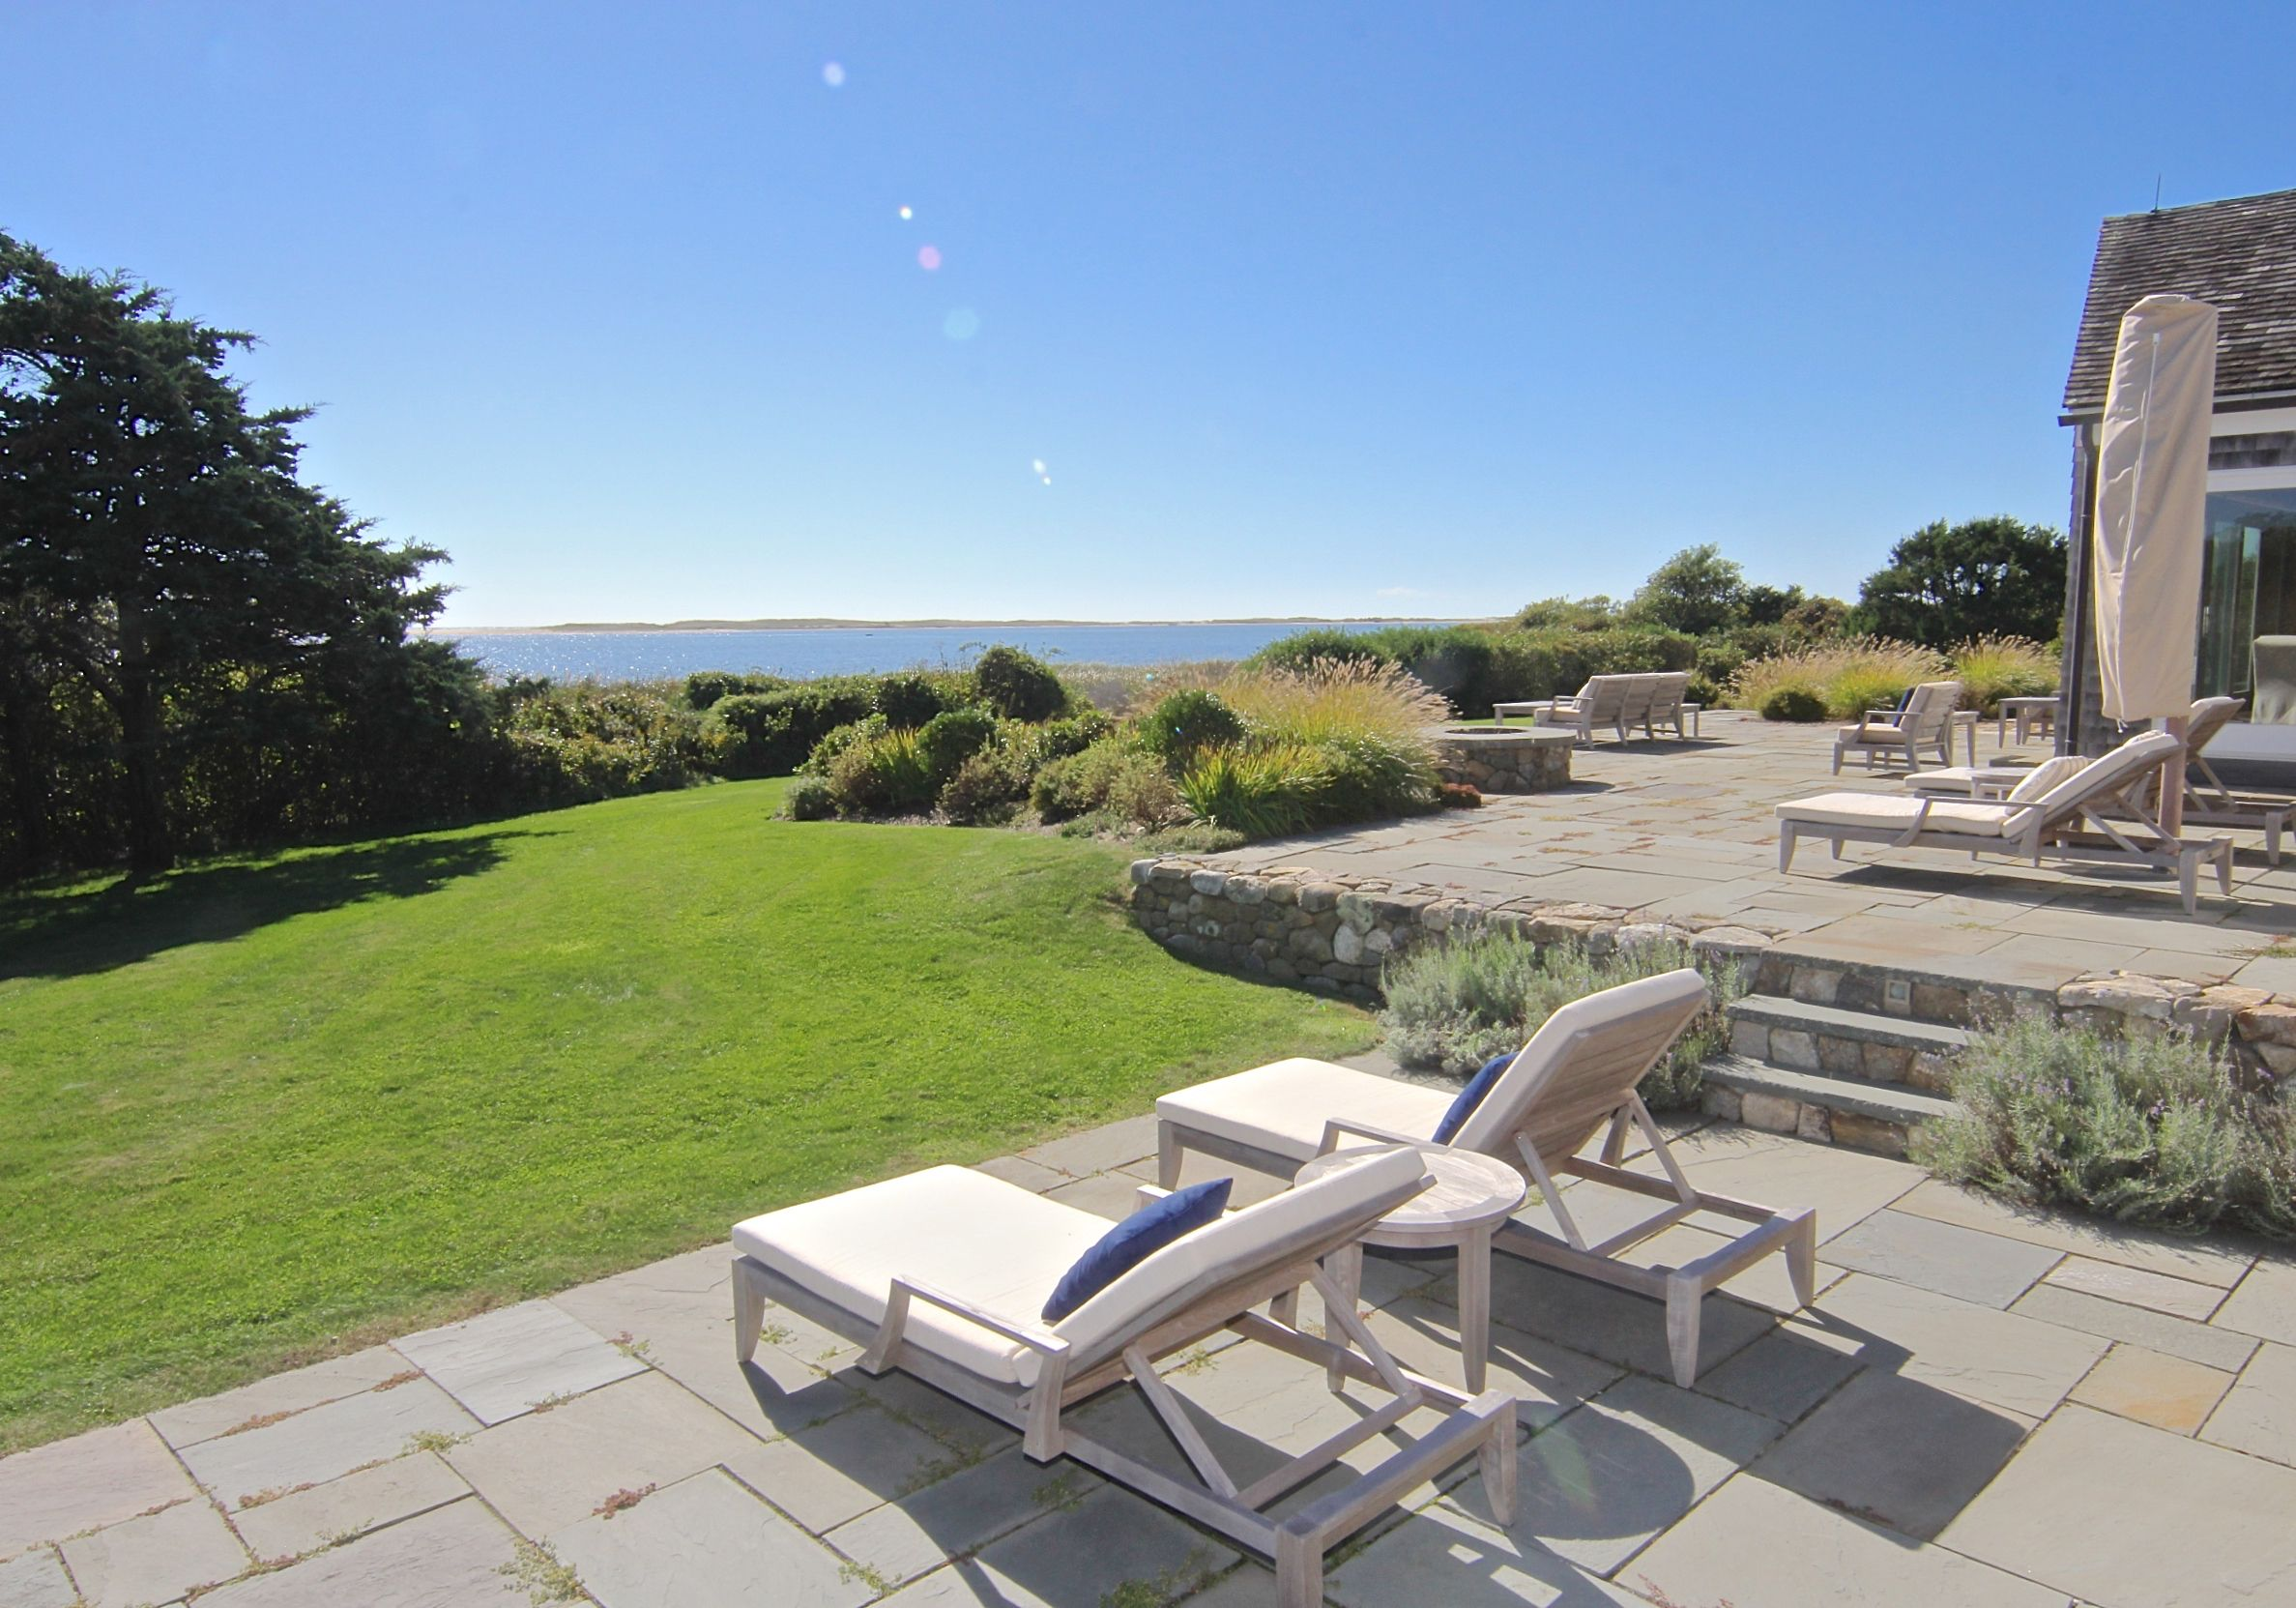 Additional photo for property listing at 59 & 61 Butlers Cove Road 59 & 61 59 61 Butlers Cove Edgartown, Massachusetts,02539 Hoa Kỳ